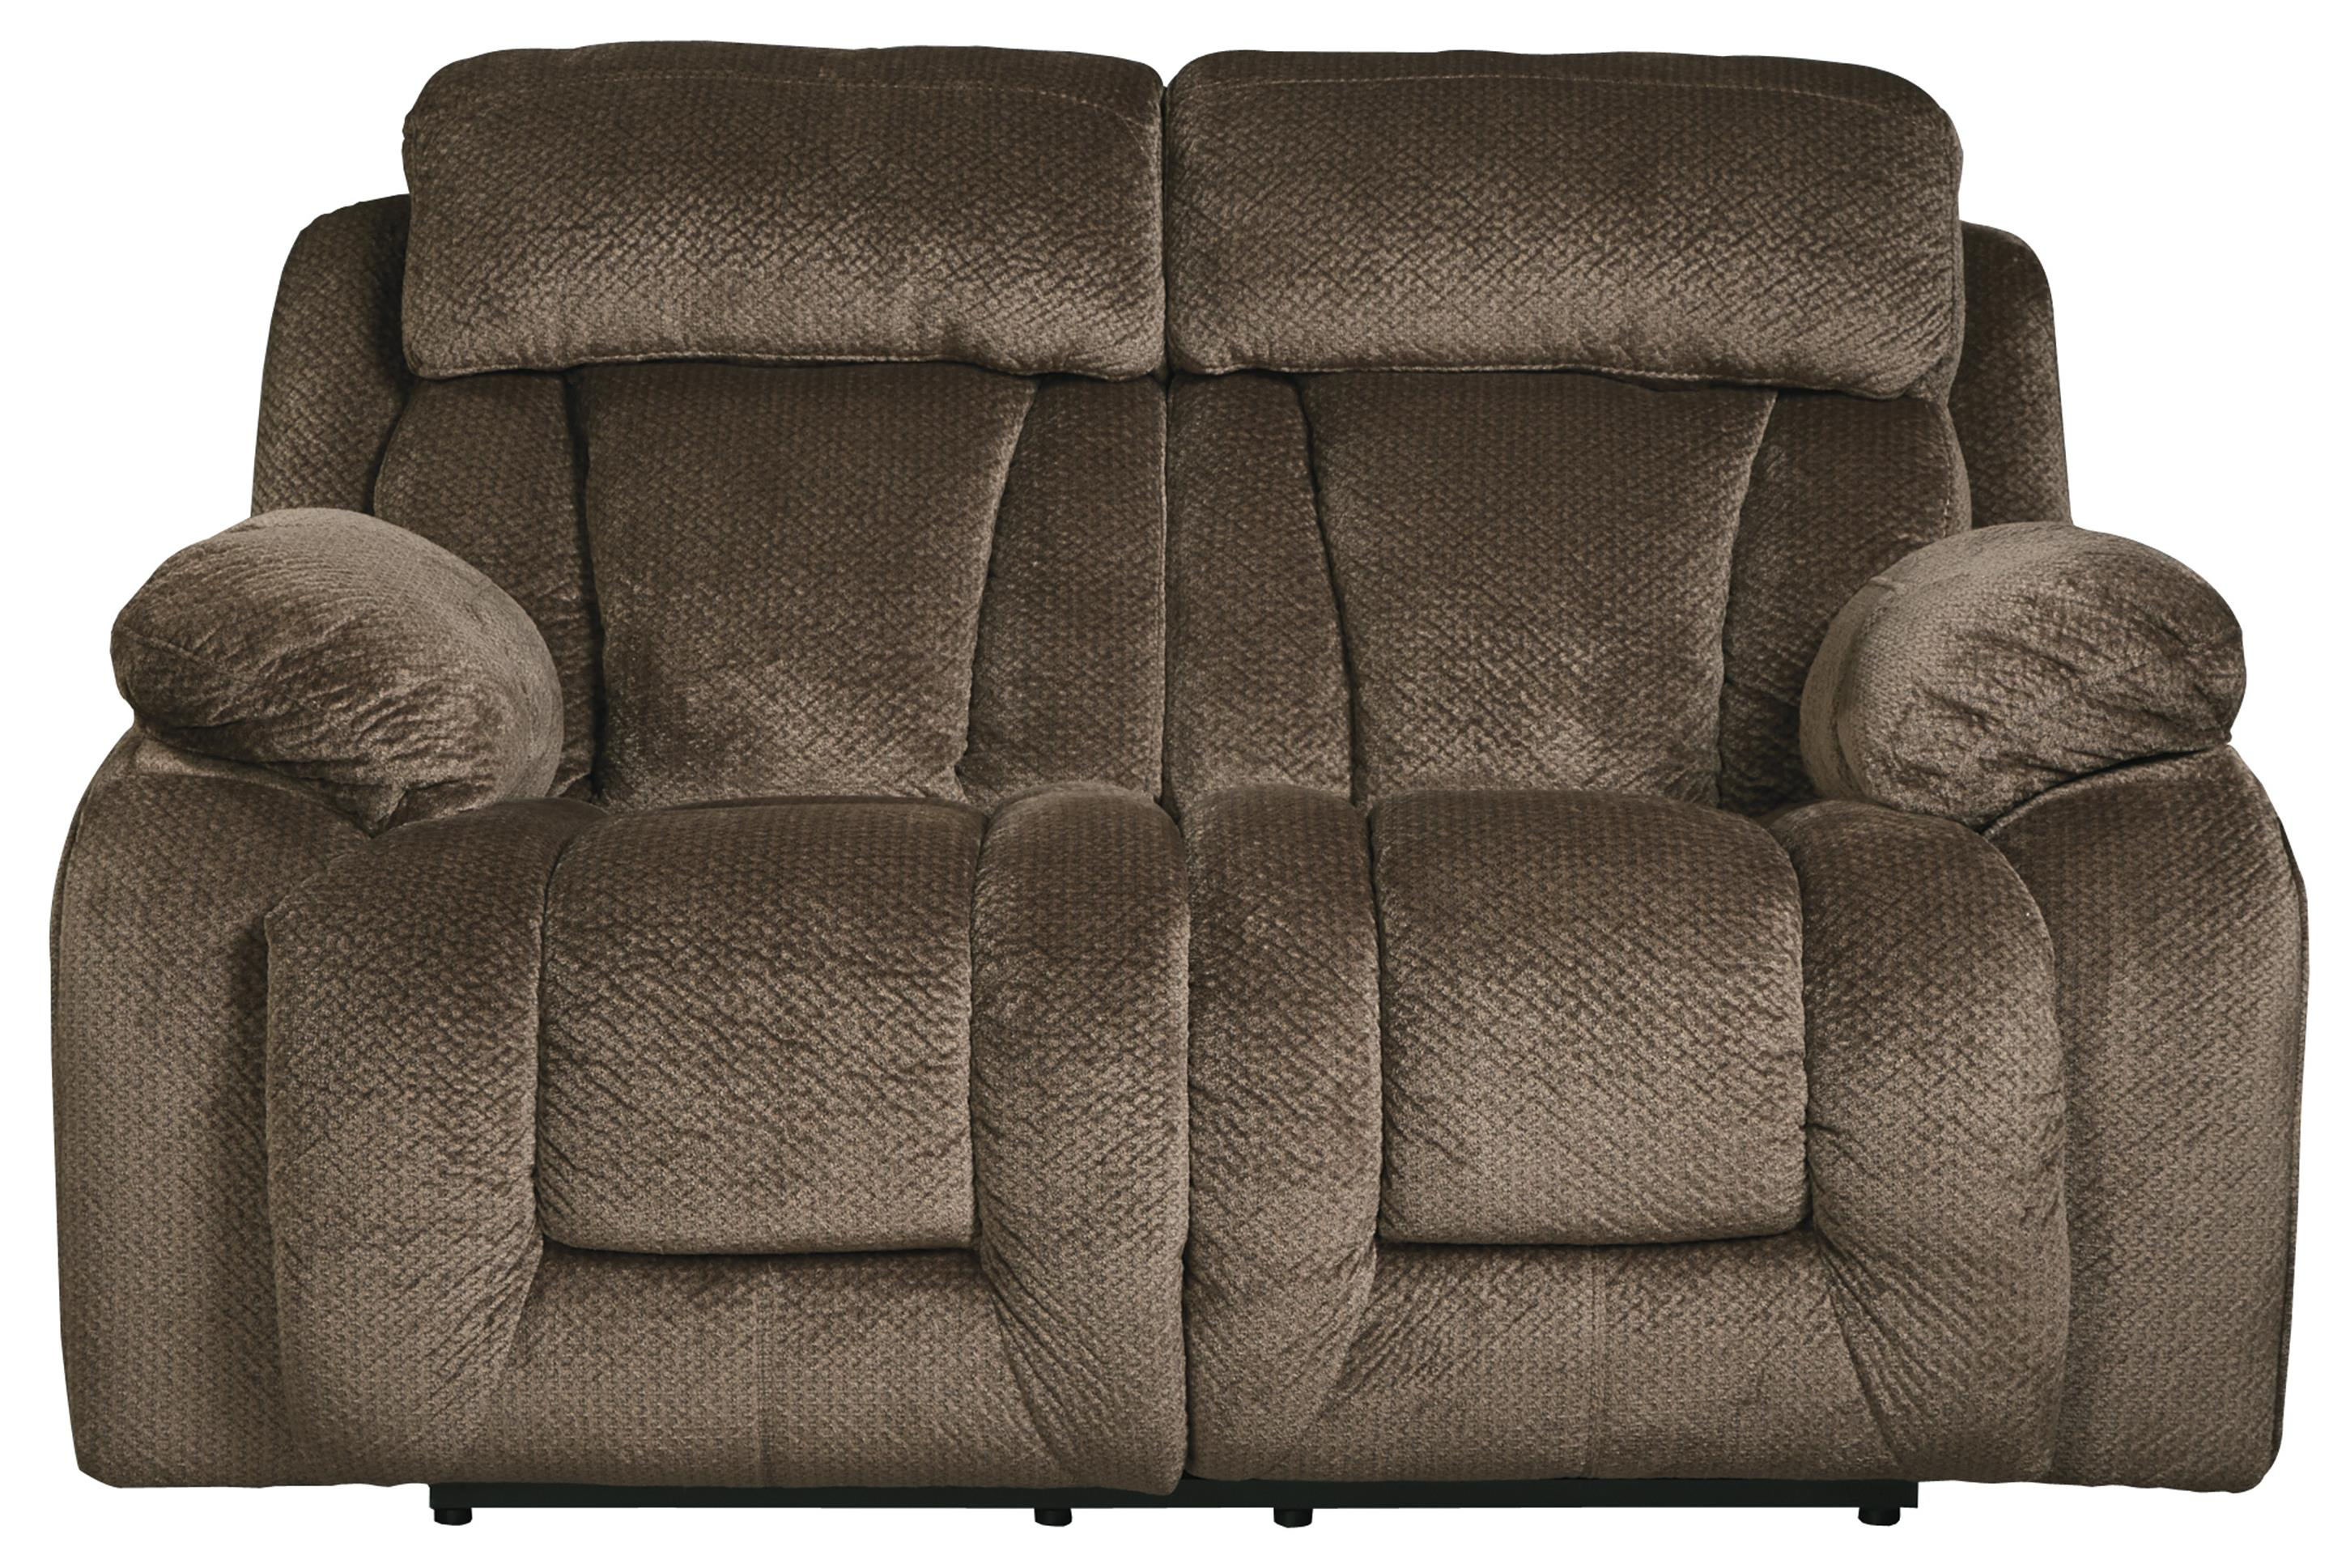 Signature Design by Ashley Stricklin Reclining Power Loveseat - Item Number: 8650374